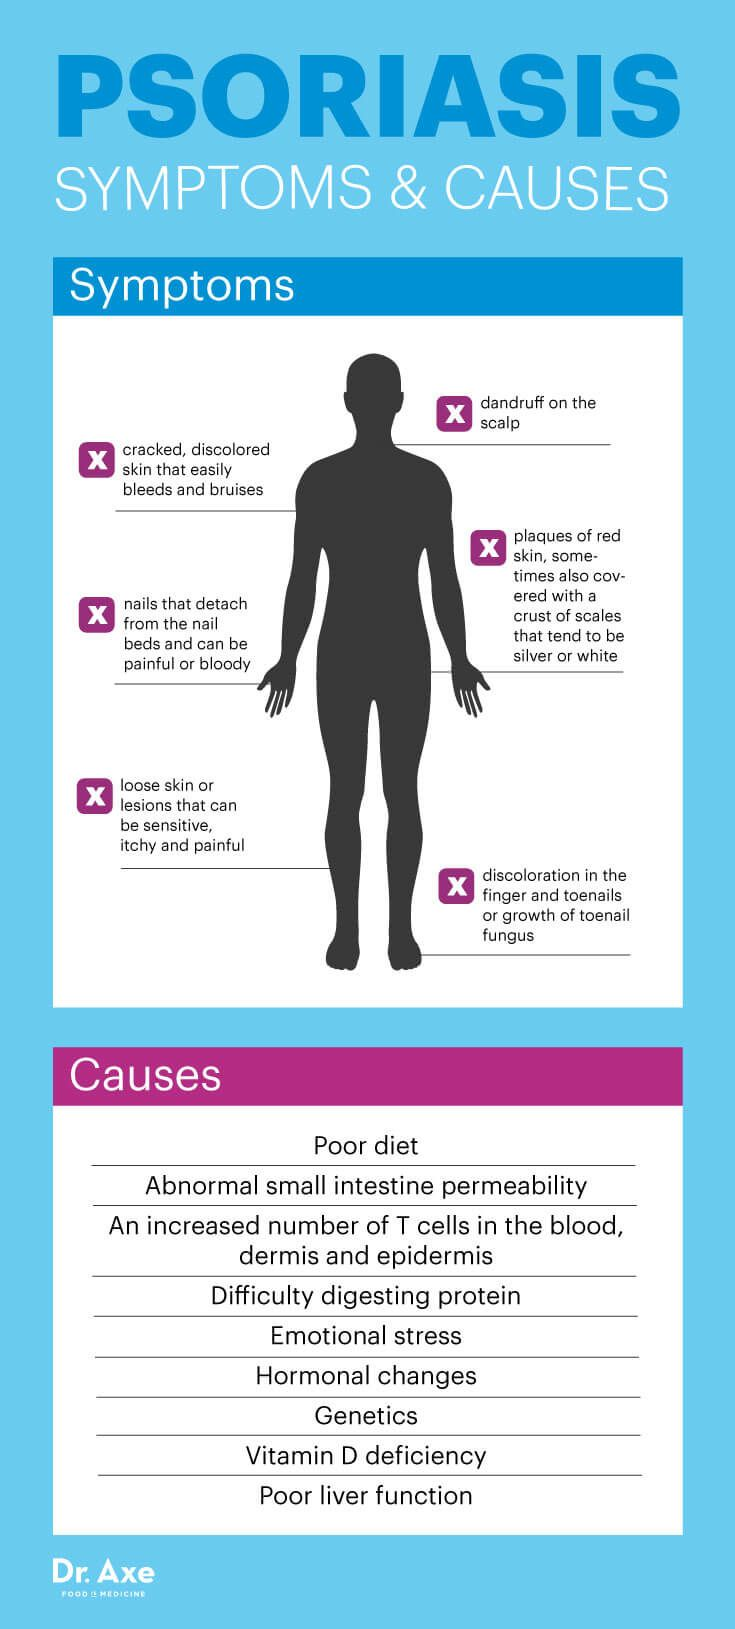 Psoriasis symptoms and causes - Dr. Axe